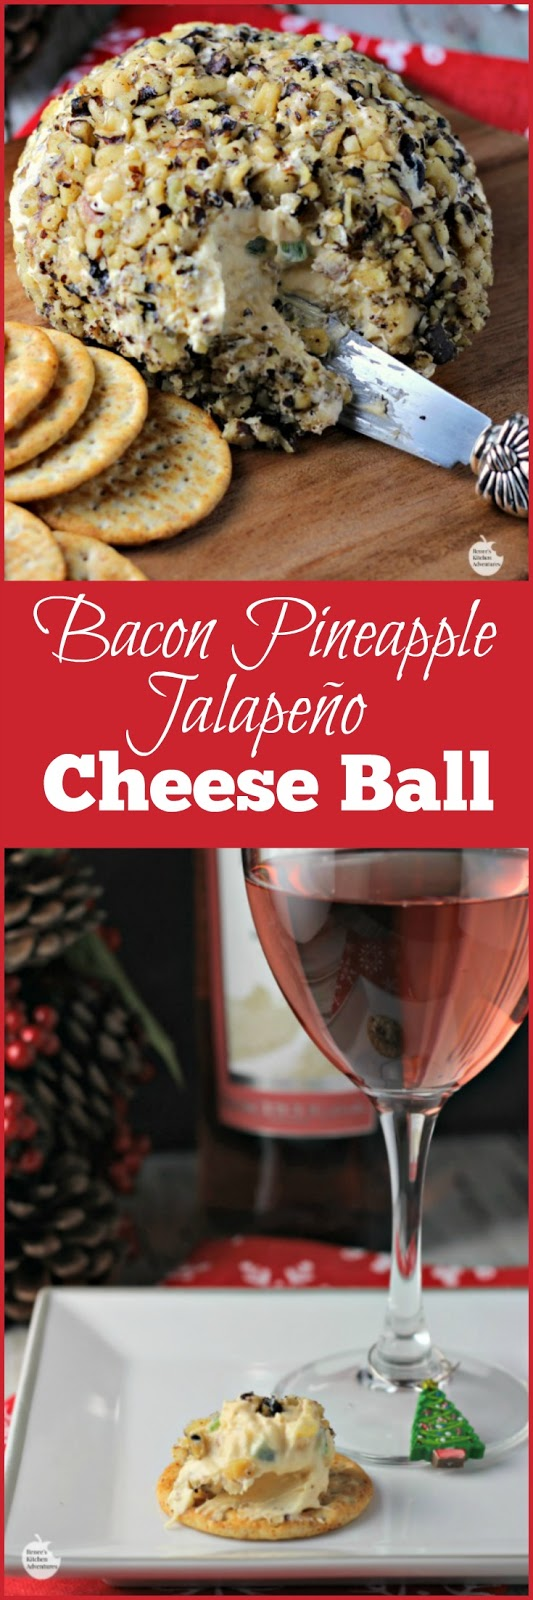 Bacon Pineapple Jalapeño Cheese Ball | by Renee's Kitchen Adventures - Easy cheese ball appetizer recipe for all your holiday entertaining needs! #SundaySupper #GalloFamily